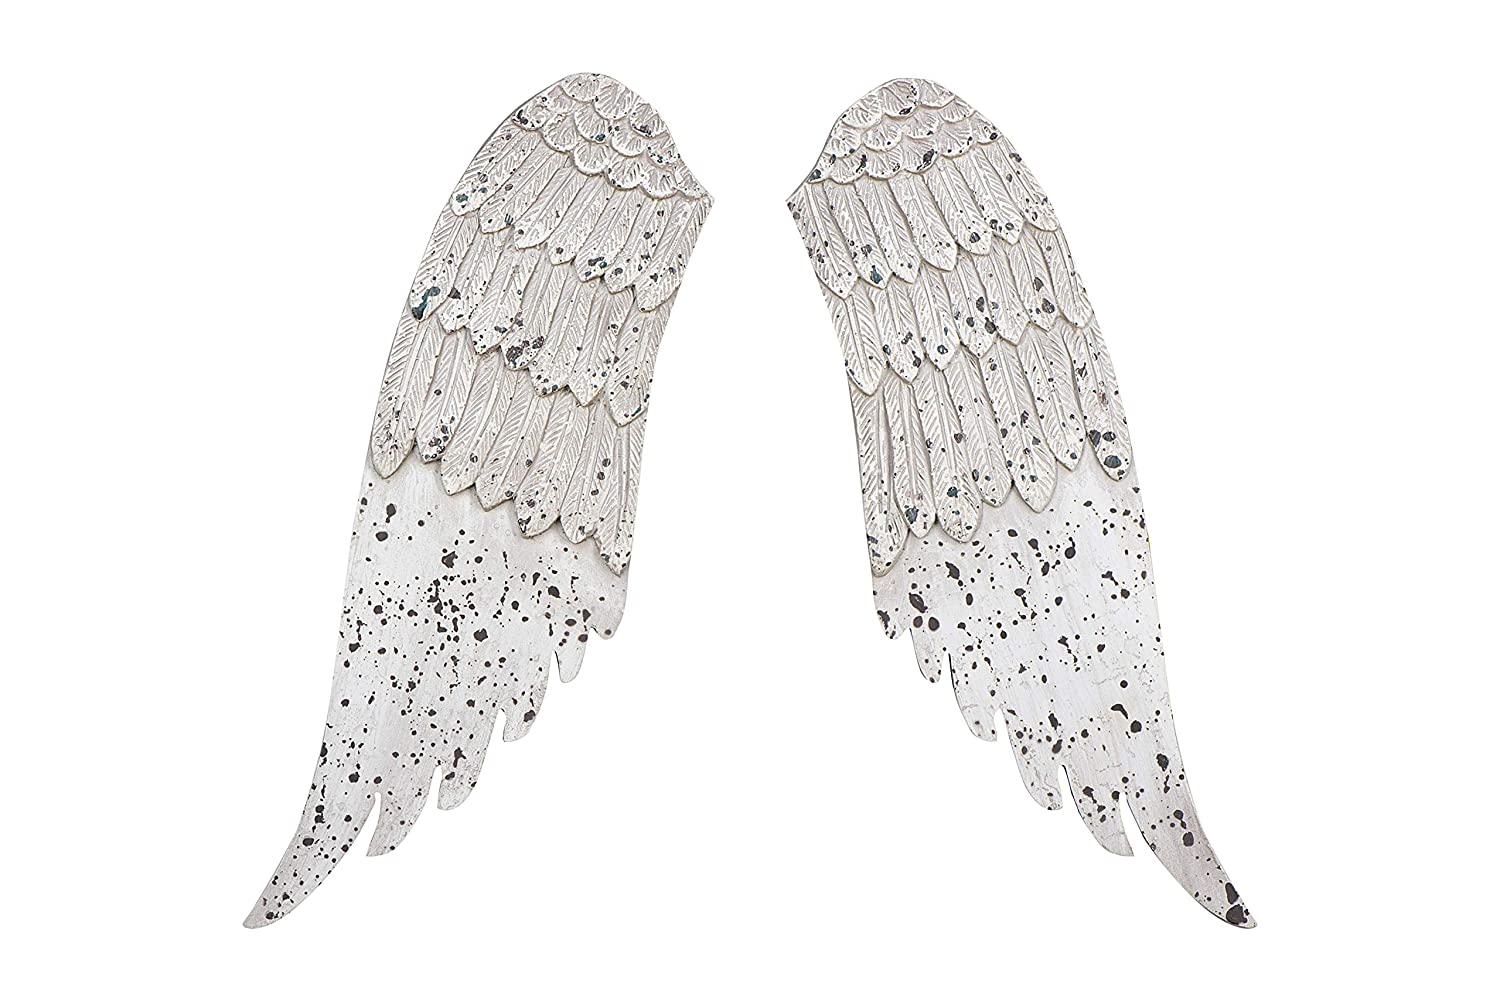 Distressed grey wooden decorative angel wings.